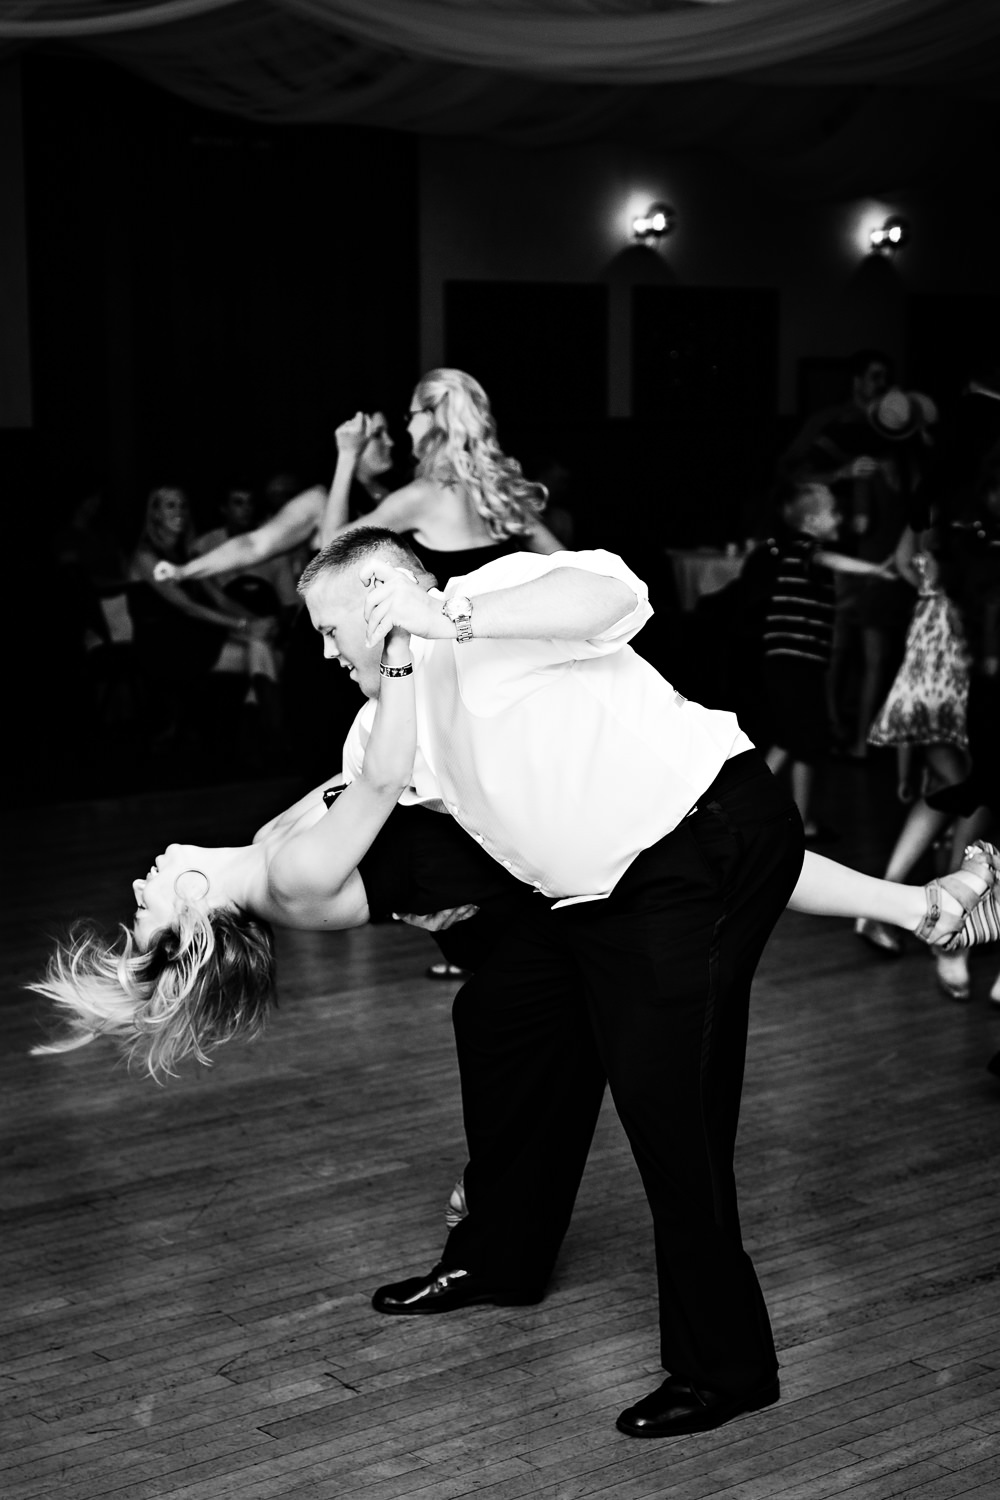 billings-wedding-eagles-guests-dancing.jpg